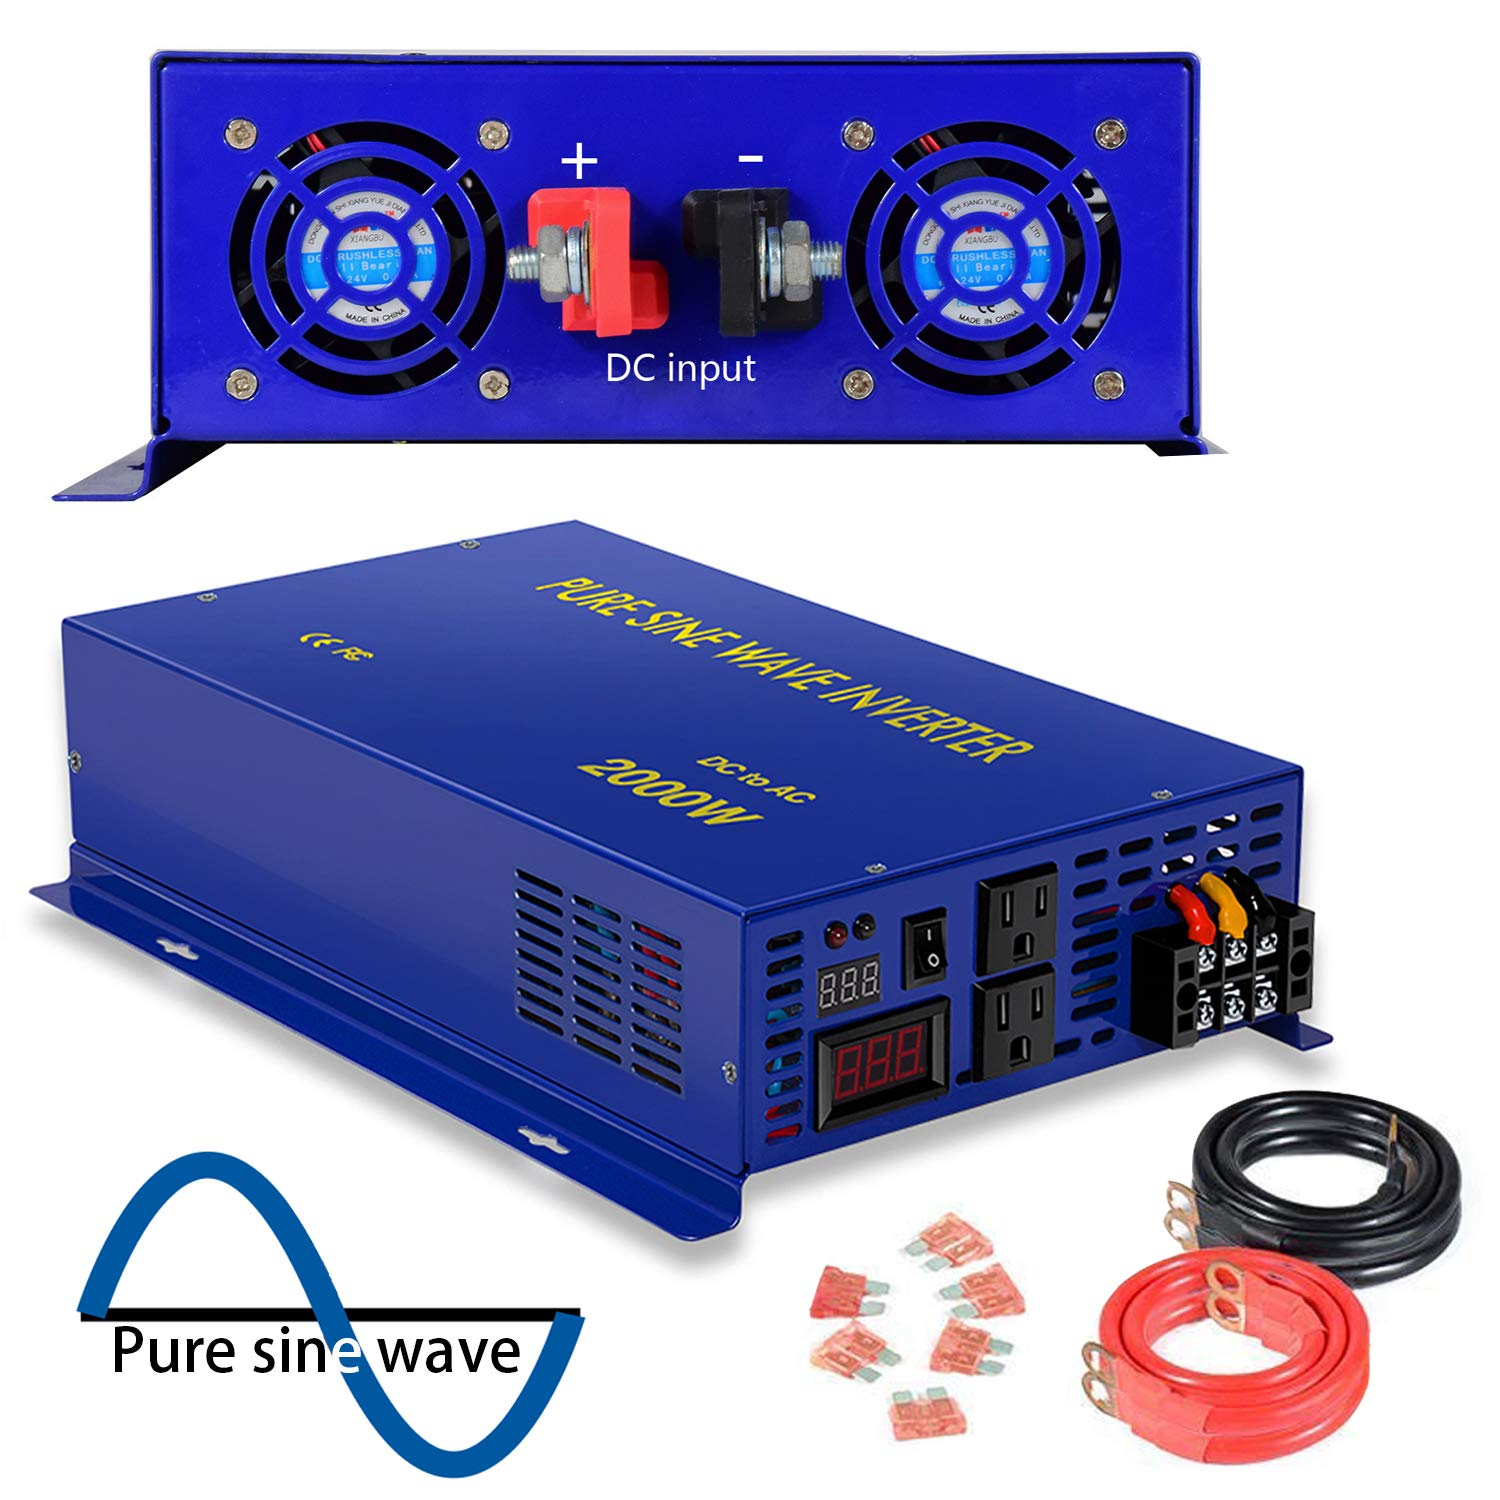 2000 Watt Pure Sine Wave Inverter 24V DC to 120V AC, 2000W Power Invert  Surge 4000W Power Converter for Solar System  (2000W 24V 120V)